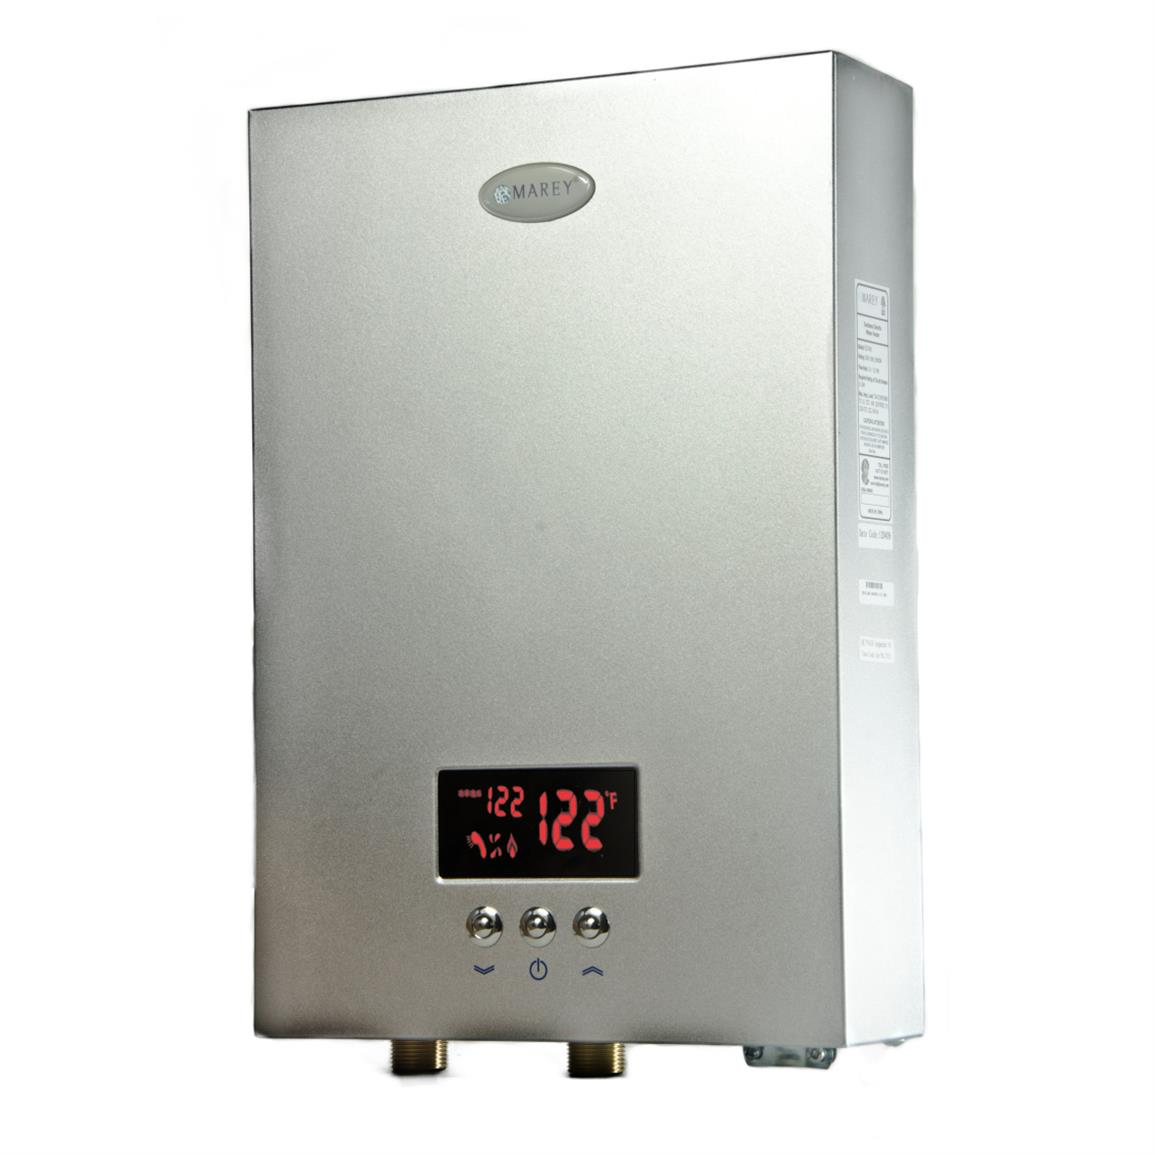 Marey Eco 180 Electric Tankless Water Heater